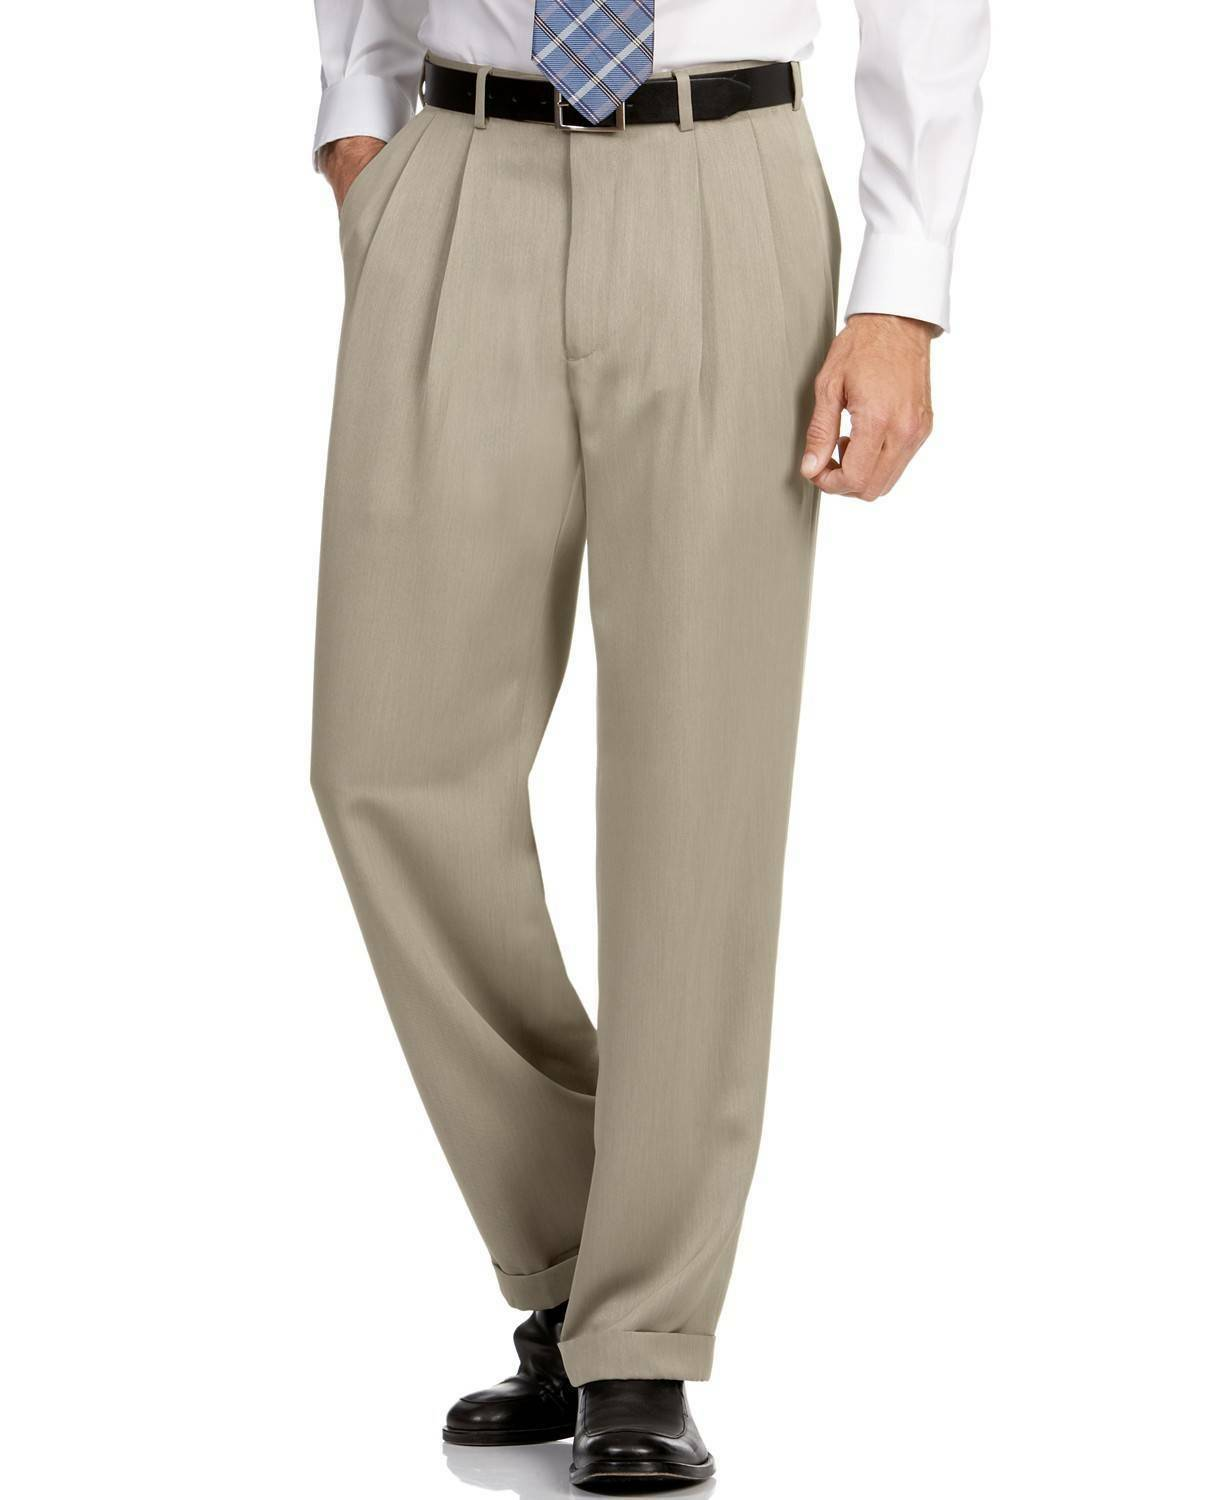 PERRY ELLIS Men BEIGE CLASSIC FIT STRETCH CASUAL PLEATED PANTS 34W 32L